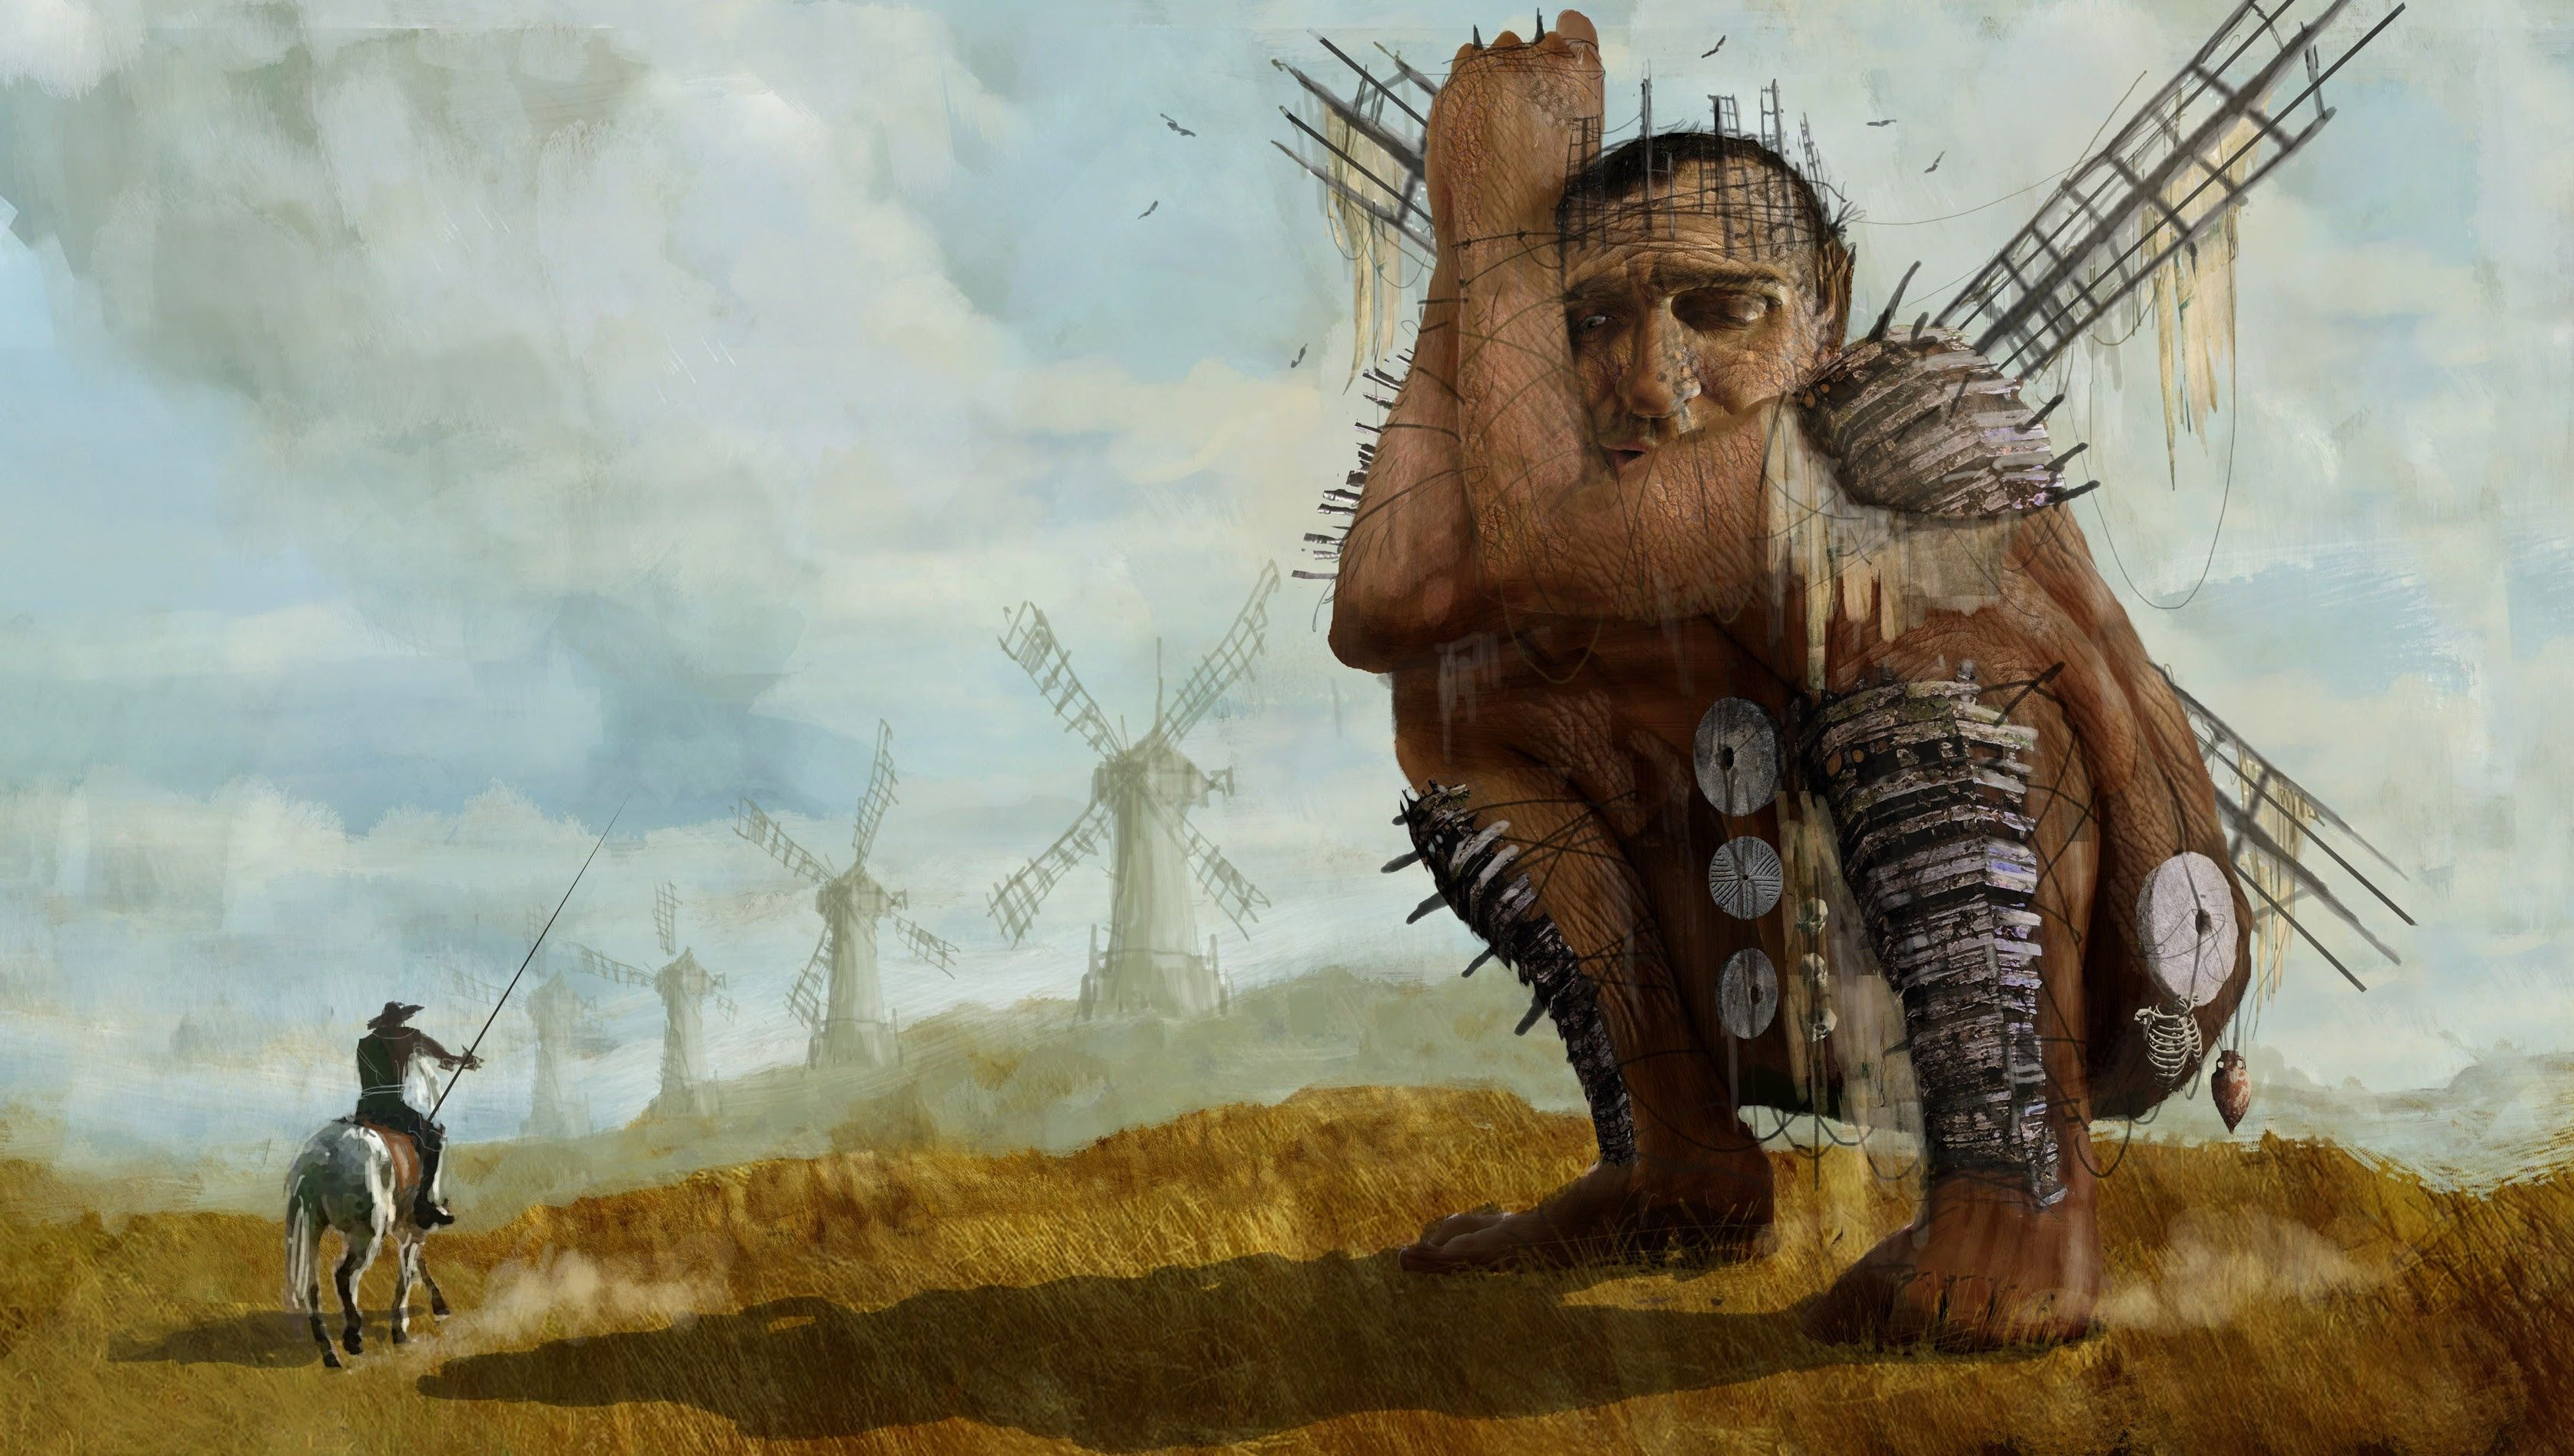 Don Quixote tilting at windmills, Terry Gilliam